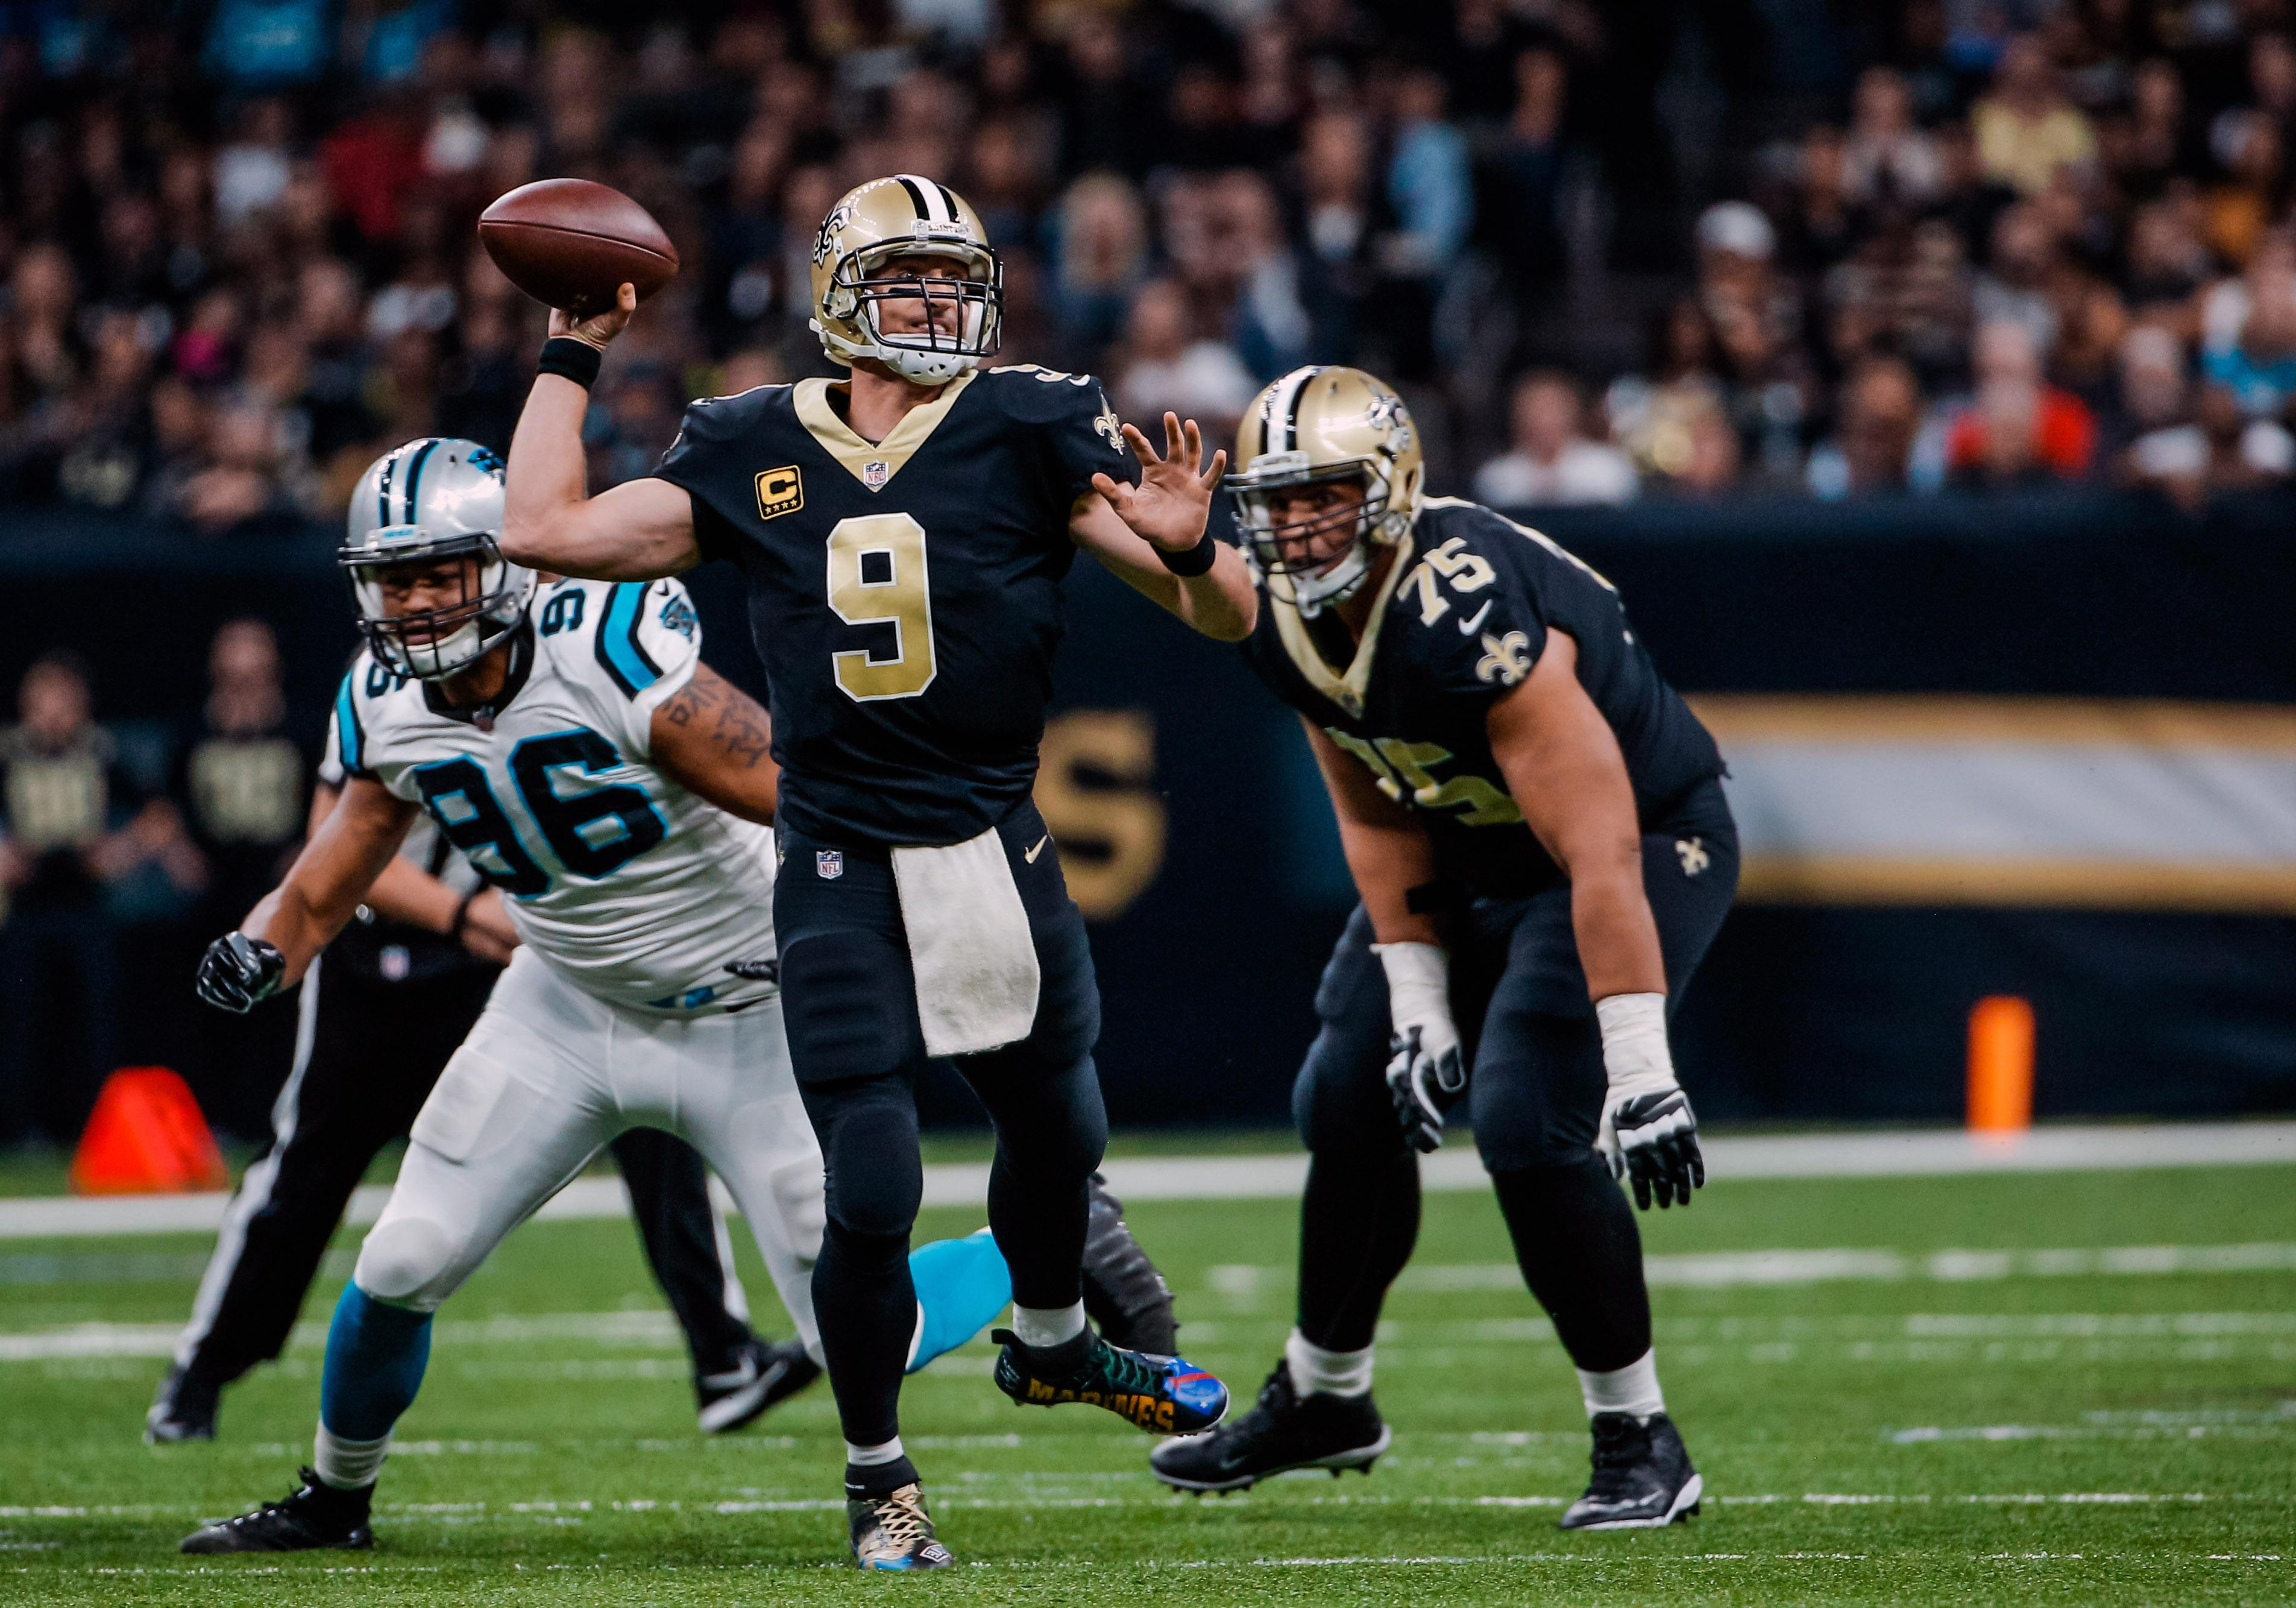 Drew Brees and the Saints have beaten the Panthers twice already this season